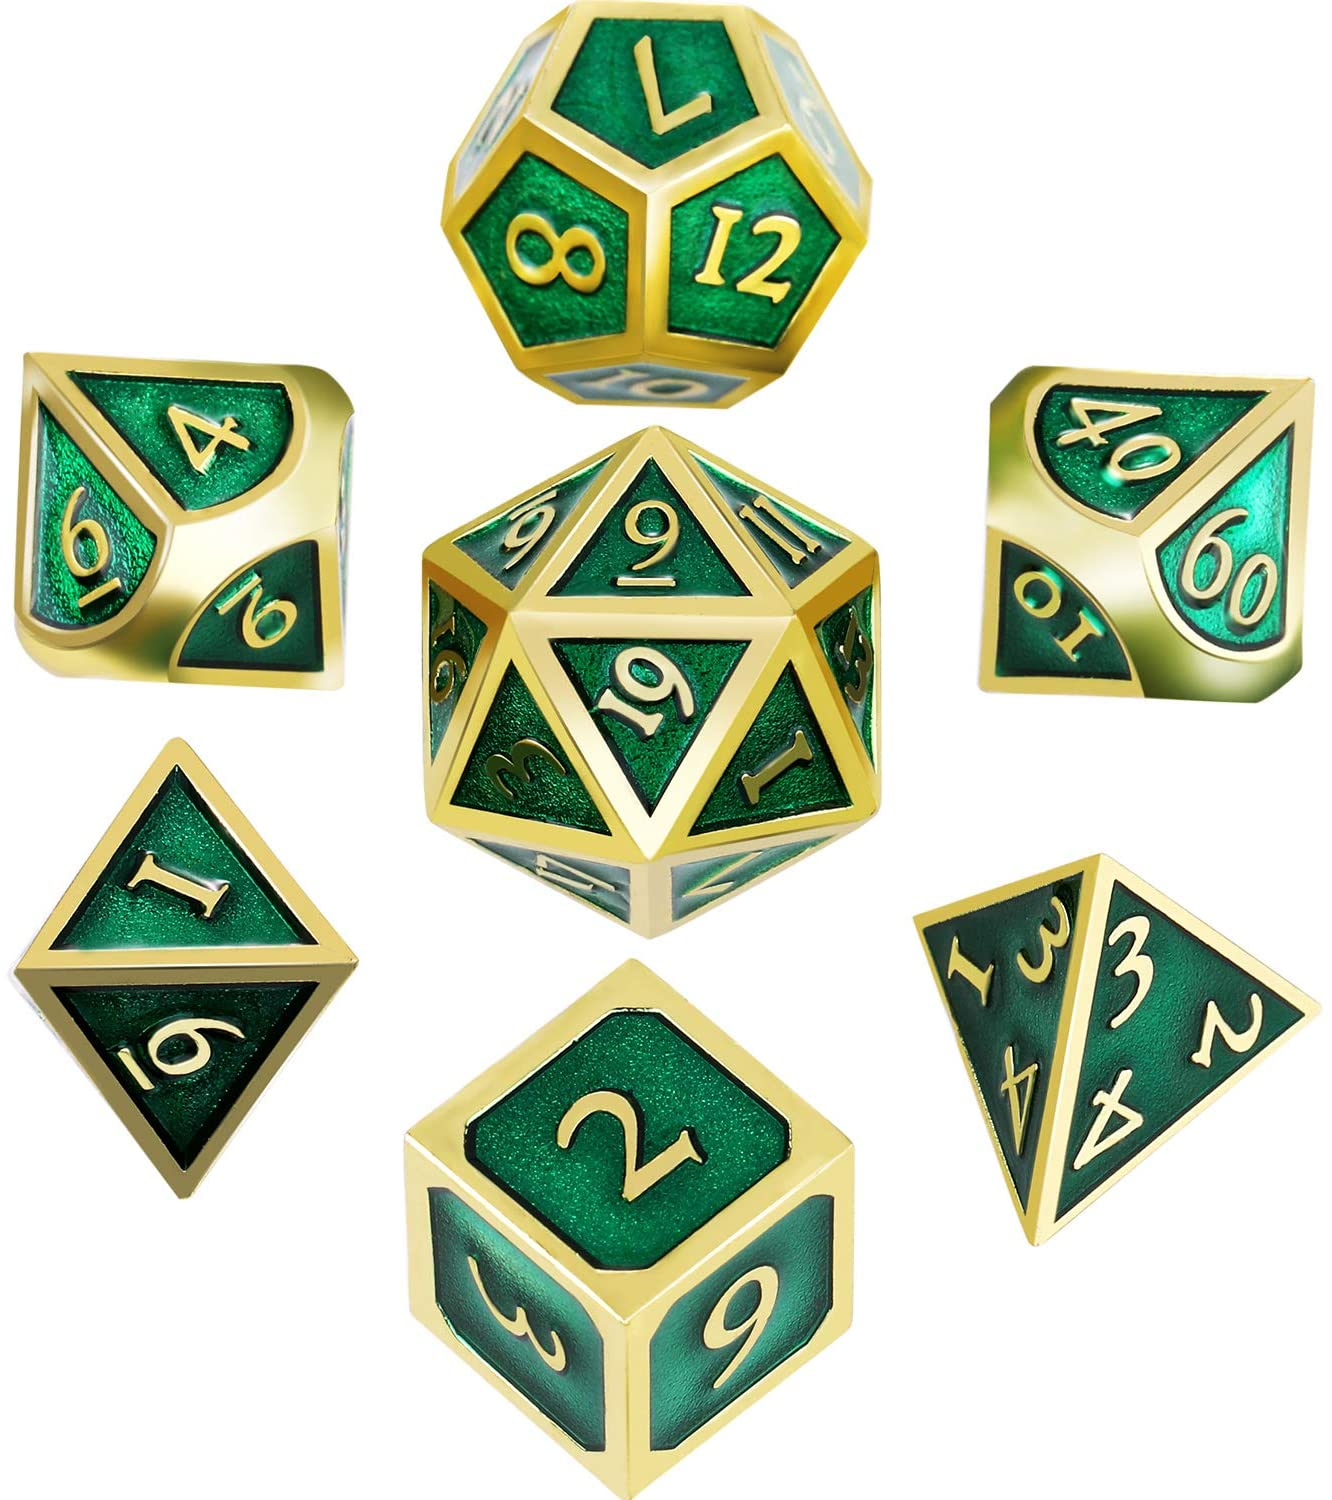 Hestya 7 Pieces Metal Dices Set DND Game Polyhedral Solid Metal D&D Dice Set with Storage Bag and Zinc Alloy with Enamel for Role Playing Game Dungeons and Dragons, Math Teaching (Gold Edge Green)